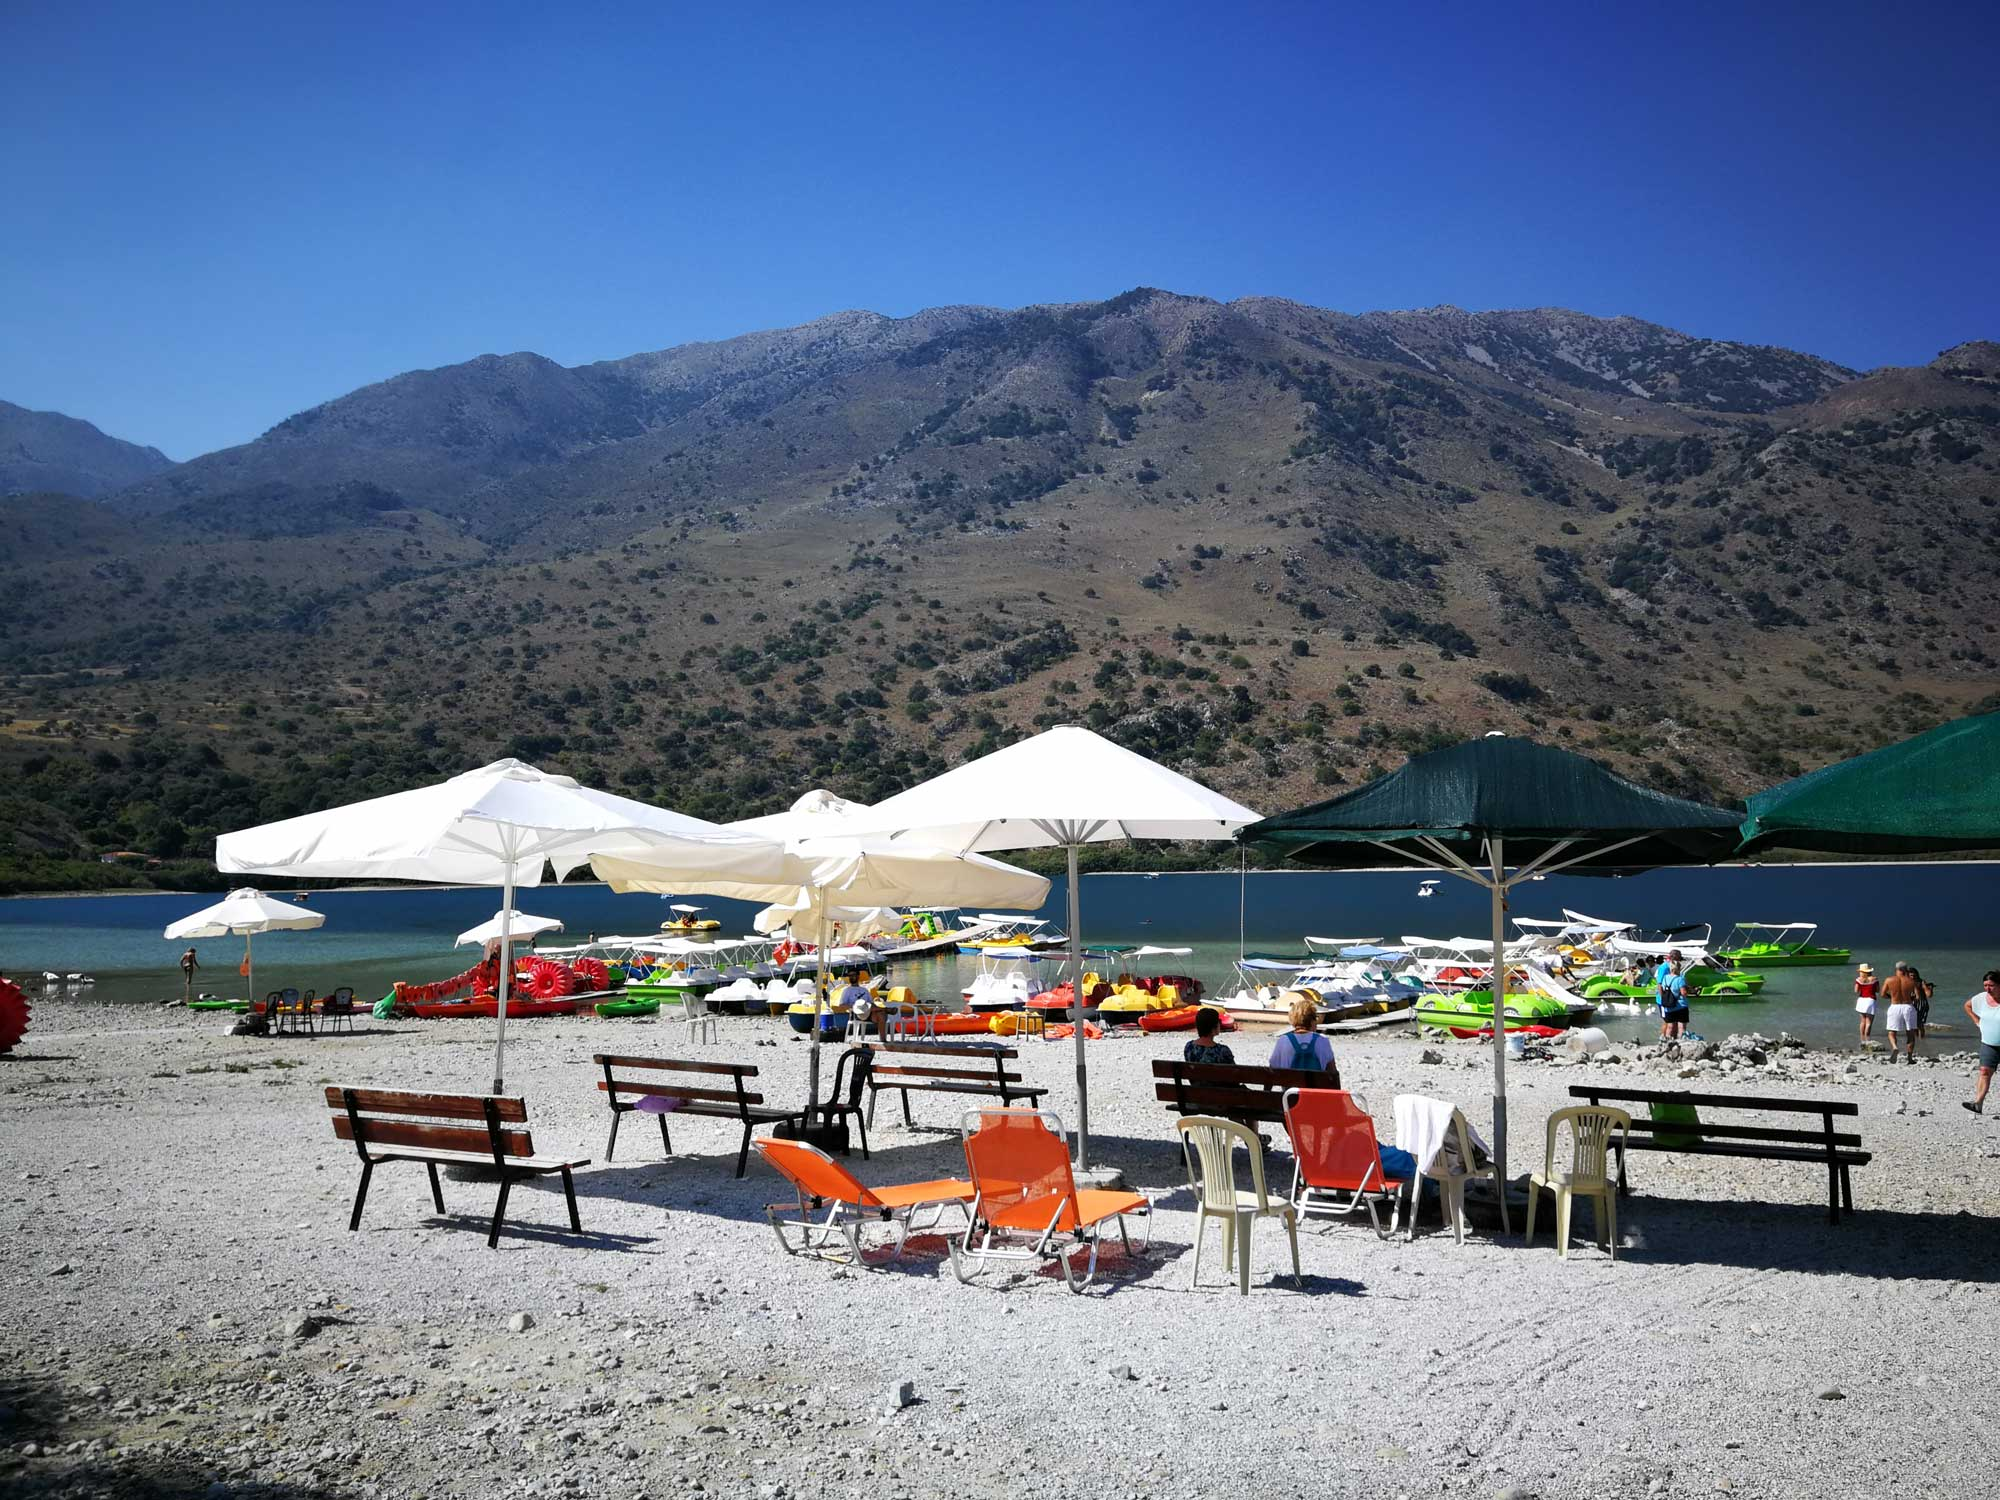 Lake Kourna beach with umbrellas and sun-loungers.